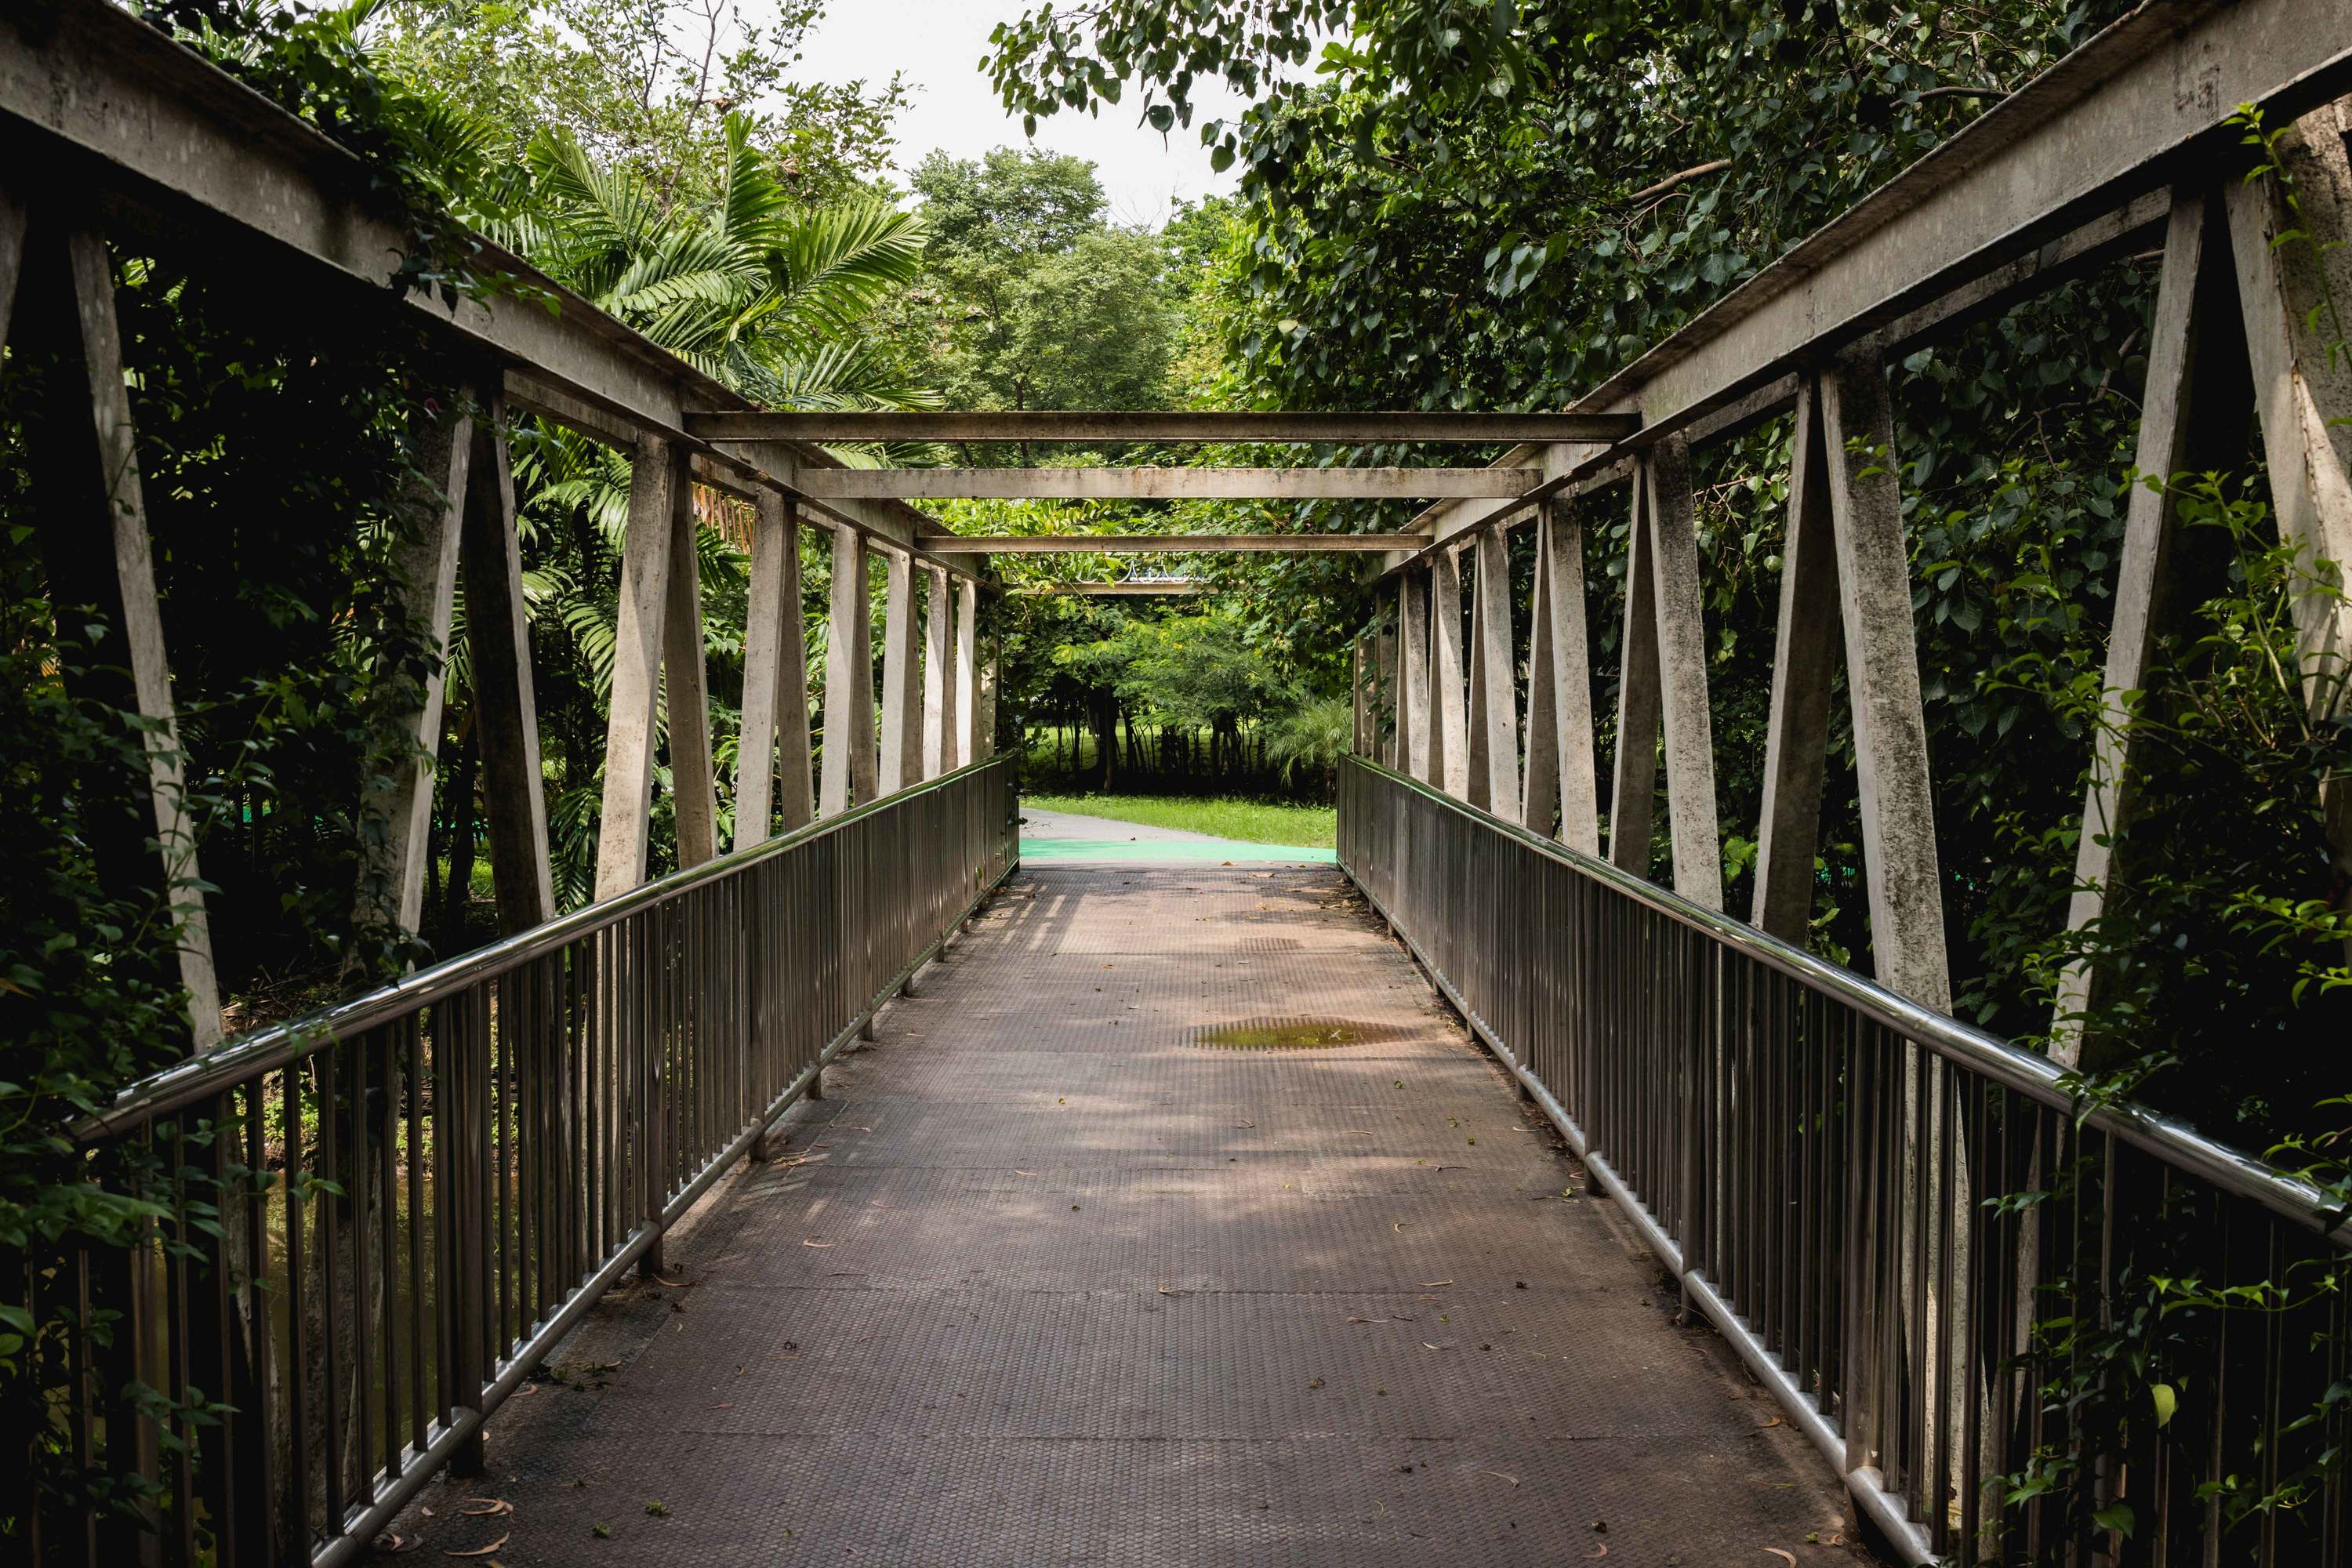 A bridge at the rodfai Park